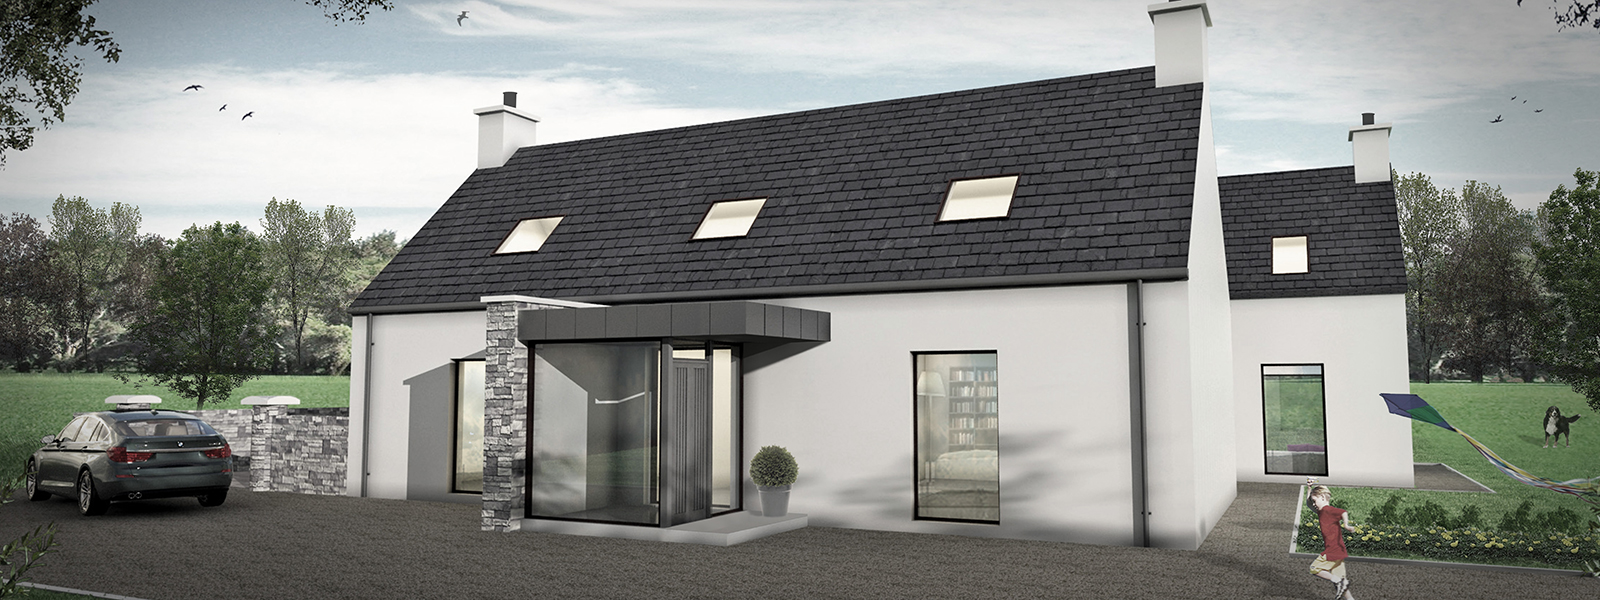 McGuigan Architects castlebar